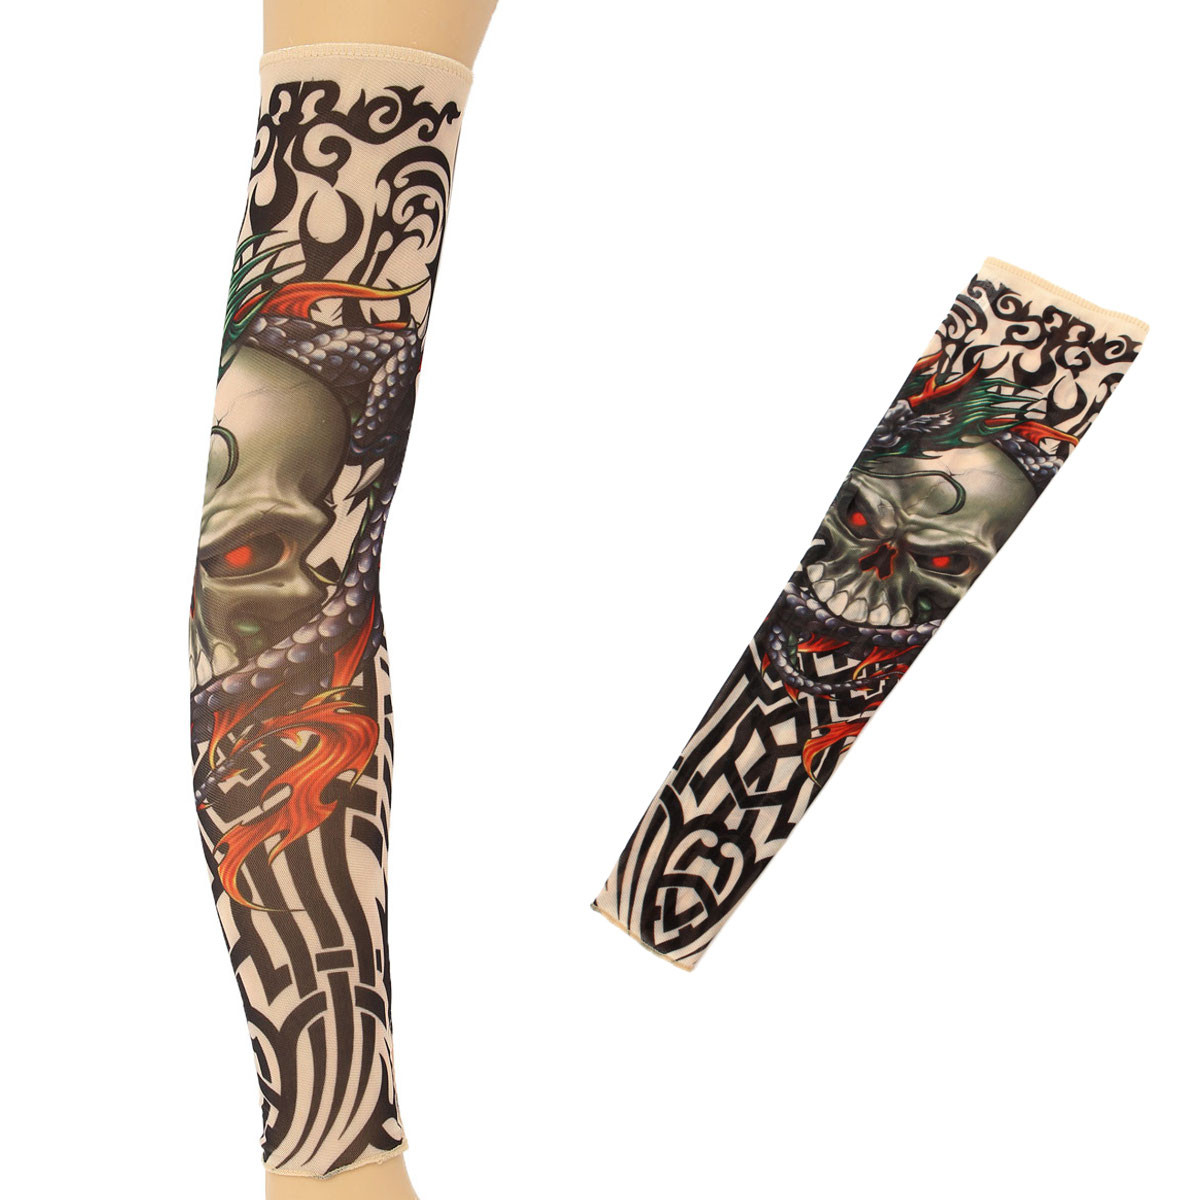 1pcs 92% Polyester Elastic Fake Tattoo Sleeve Skull Design Body Arm Stockings Temporary Tattoos For Halloween Christmas Party